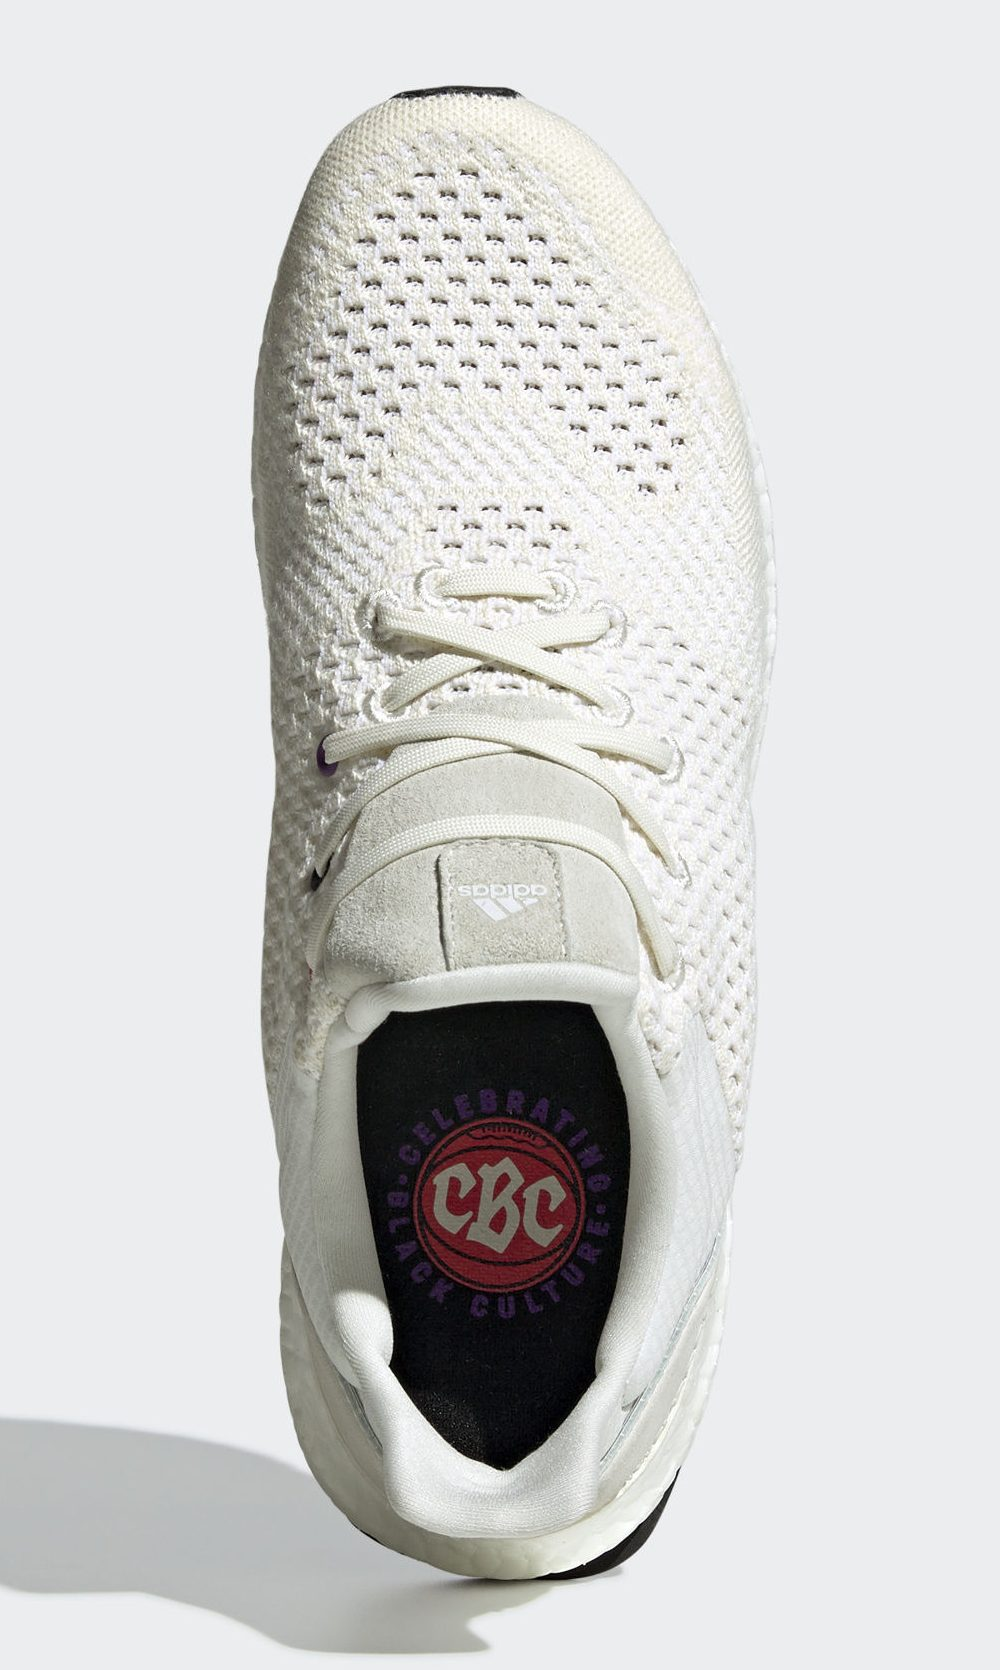 Adidas's Ultra Boost 'CBC' Honors Black